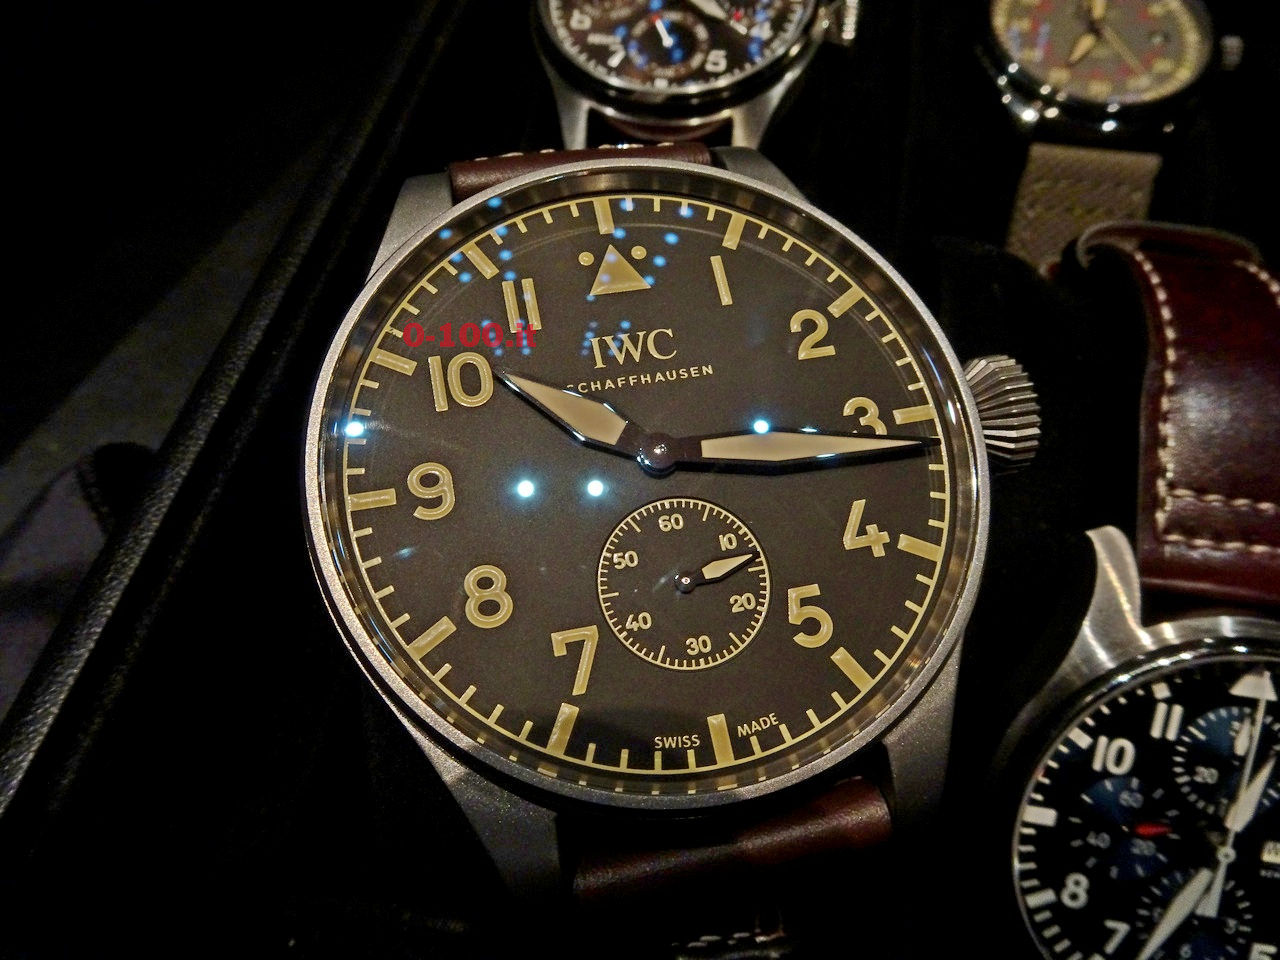 SIHH-2016-IWC-Big-Pilot-Heritage-Watch-55-ref-IW510401_0-100_12